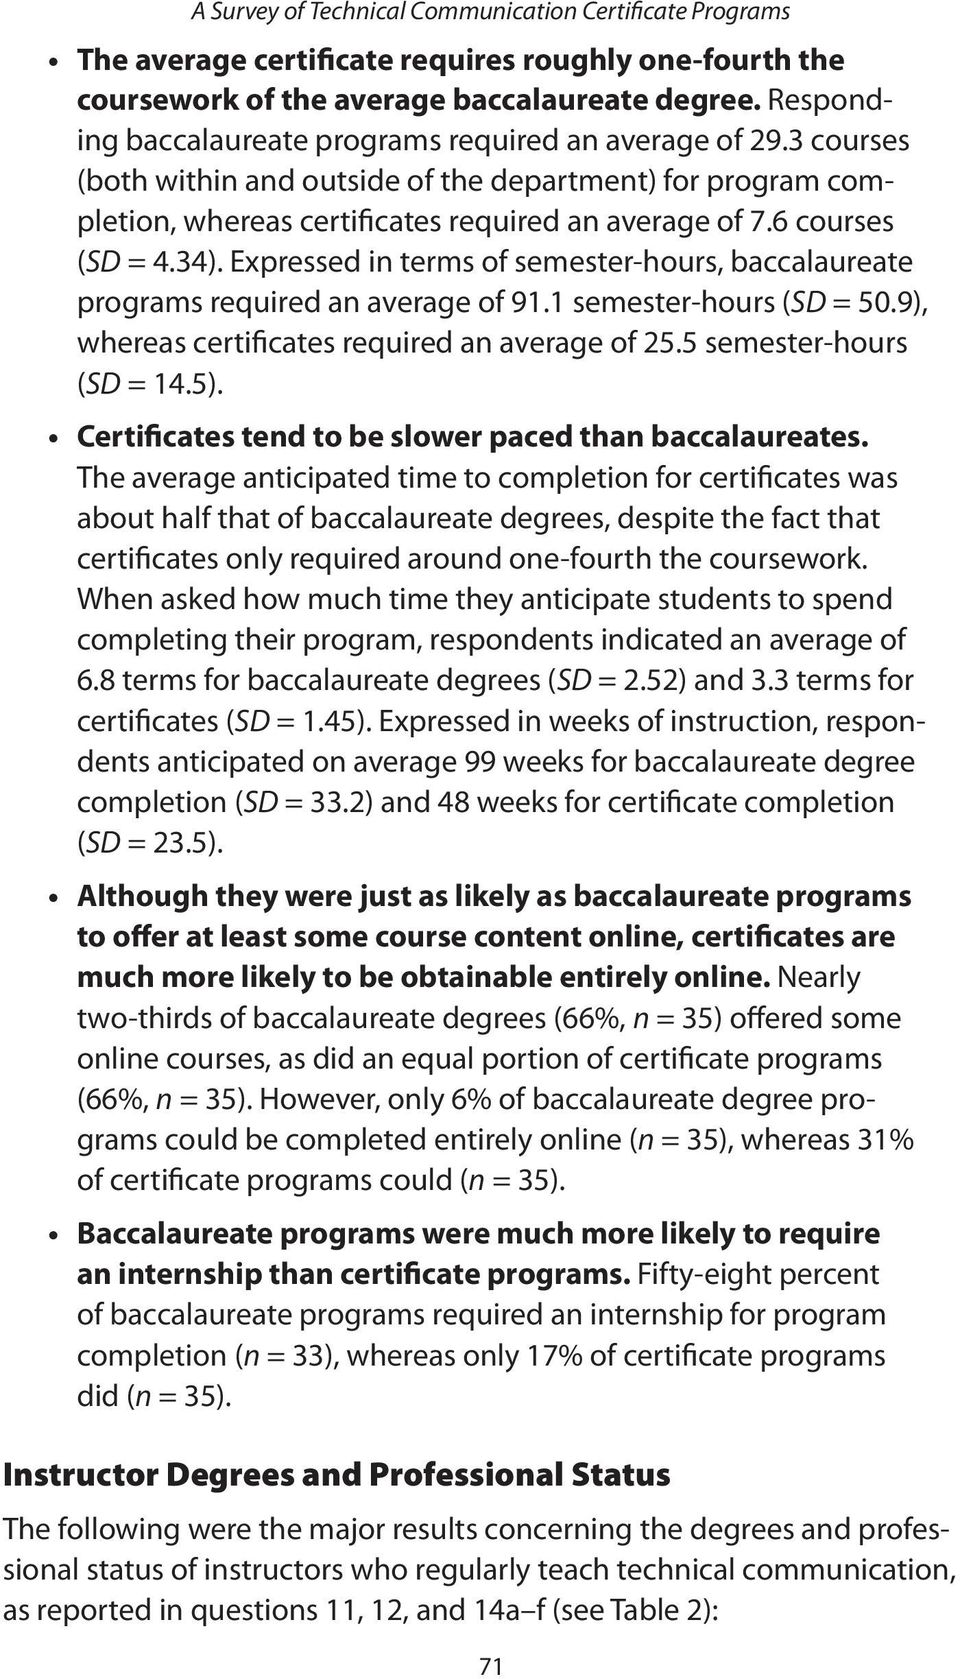 Expressed in terms of semester-hours, baccalaureate programs required an average of 91.1 semester-hours (SD = 50.9), whereas certificates required an average of 25.5 semester-hours (SD = 14.5).